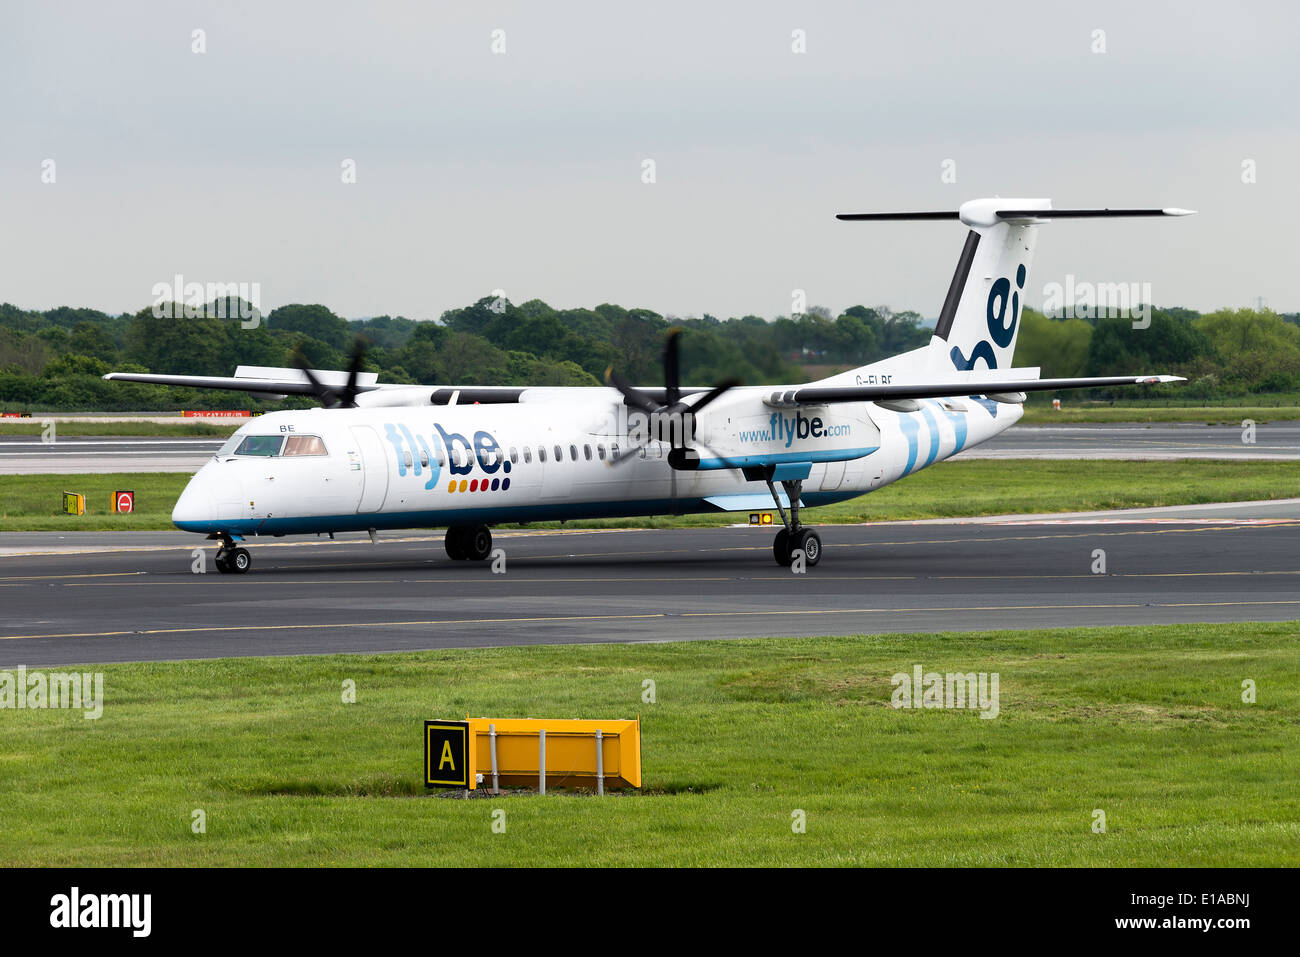 Flybe Bombardier DeHavilland Canada DHC-8-402Q Dash8 Airliner G-FLBE Taxiing at Manchester Airport England United Kingdom UK - Stock Image